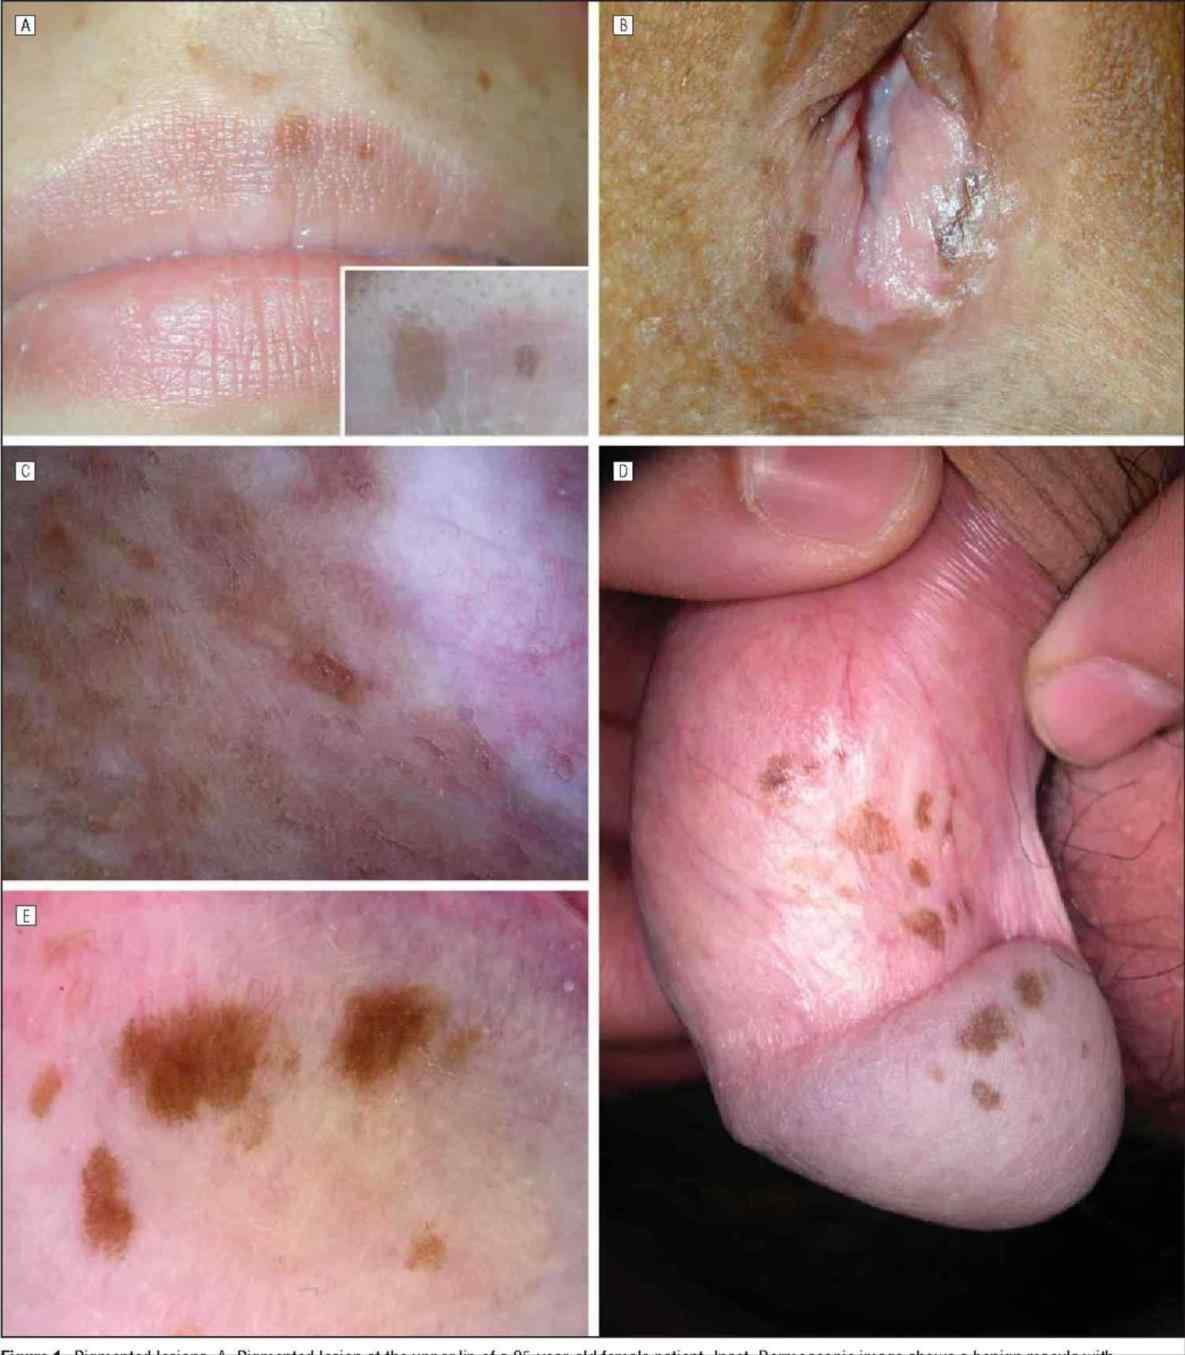 benign juvenile melanoma is free HD wallpaper. This wallpaper was upload at  September 20, 2018 upload by adminsorias in Skin Cancer.